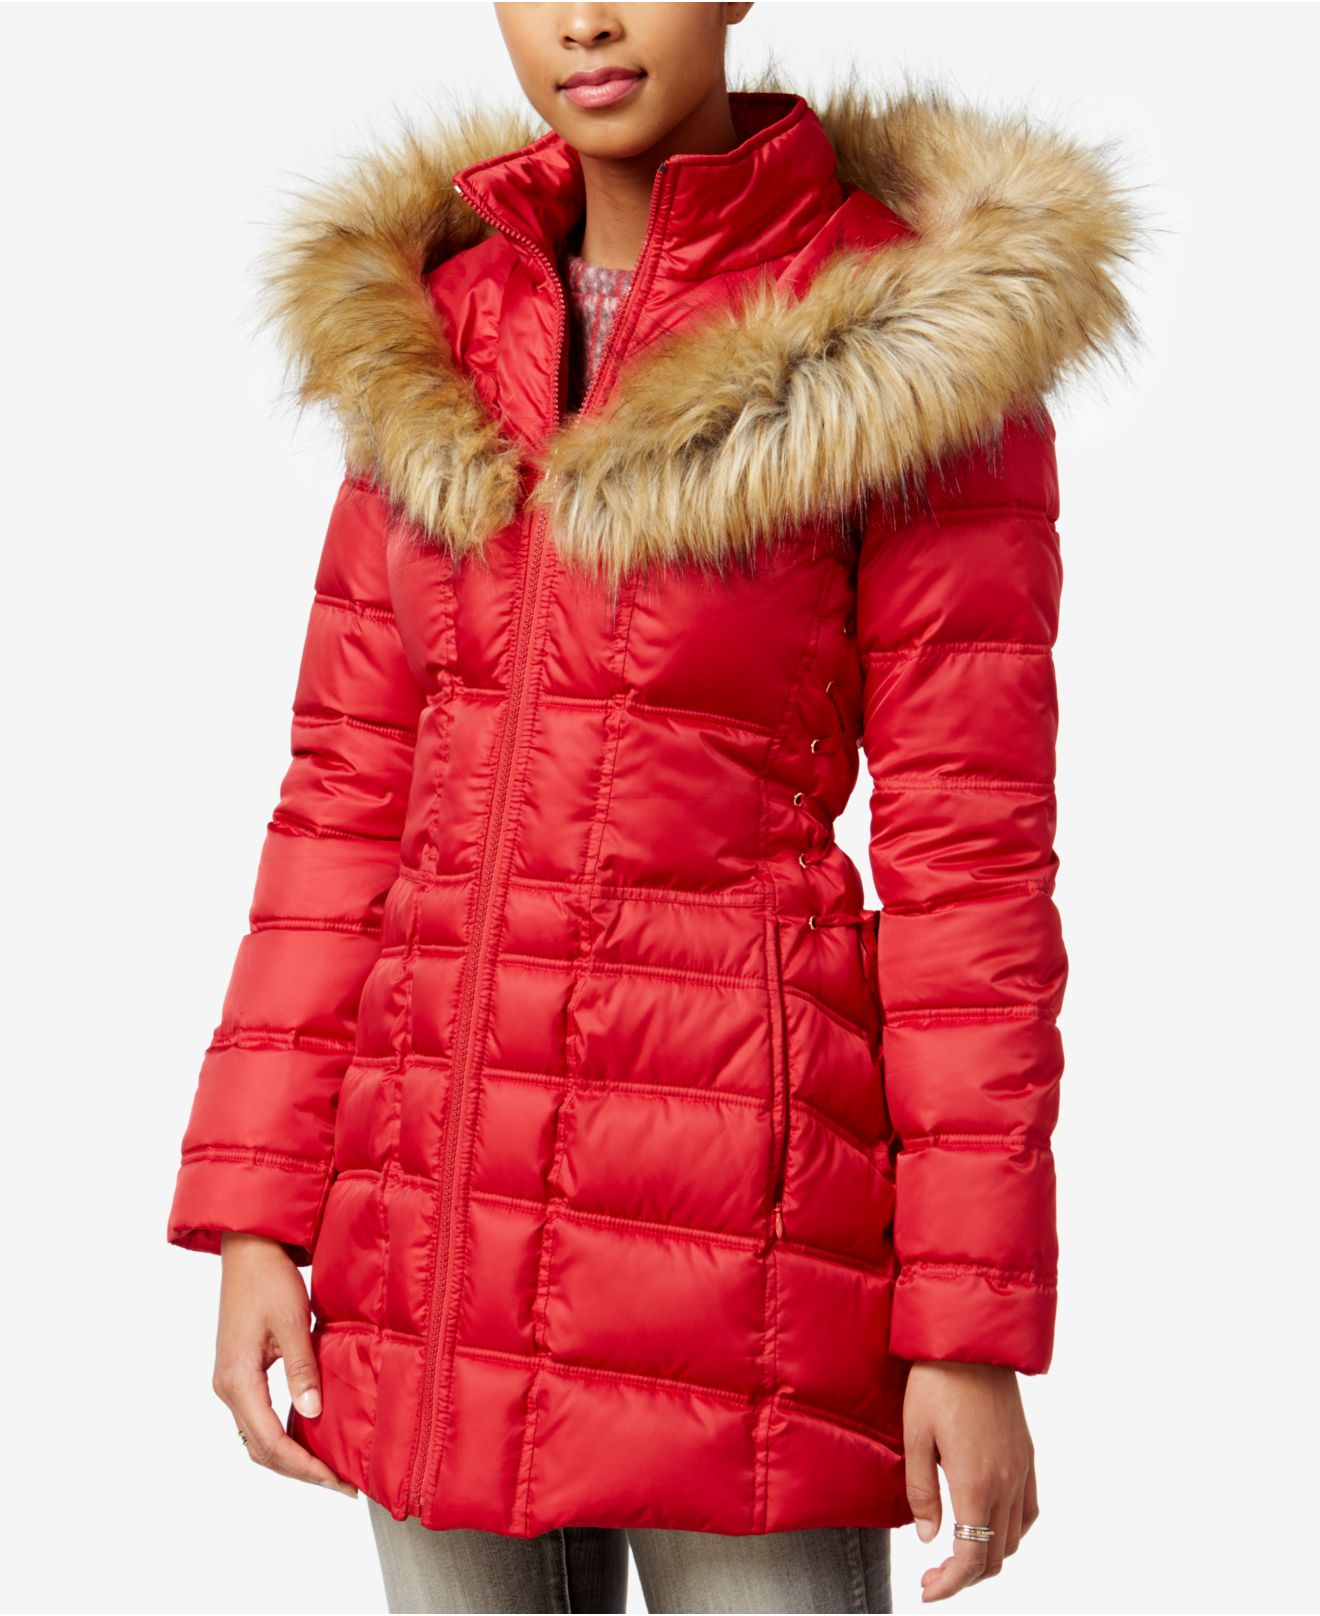 Betsey Johnson Faux Fur Trim Corset Puffer Coat In Red Lyst